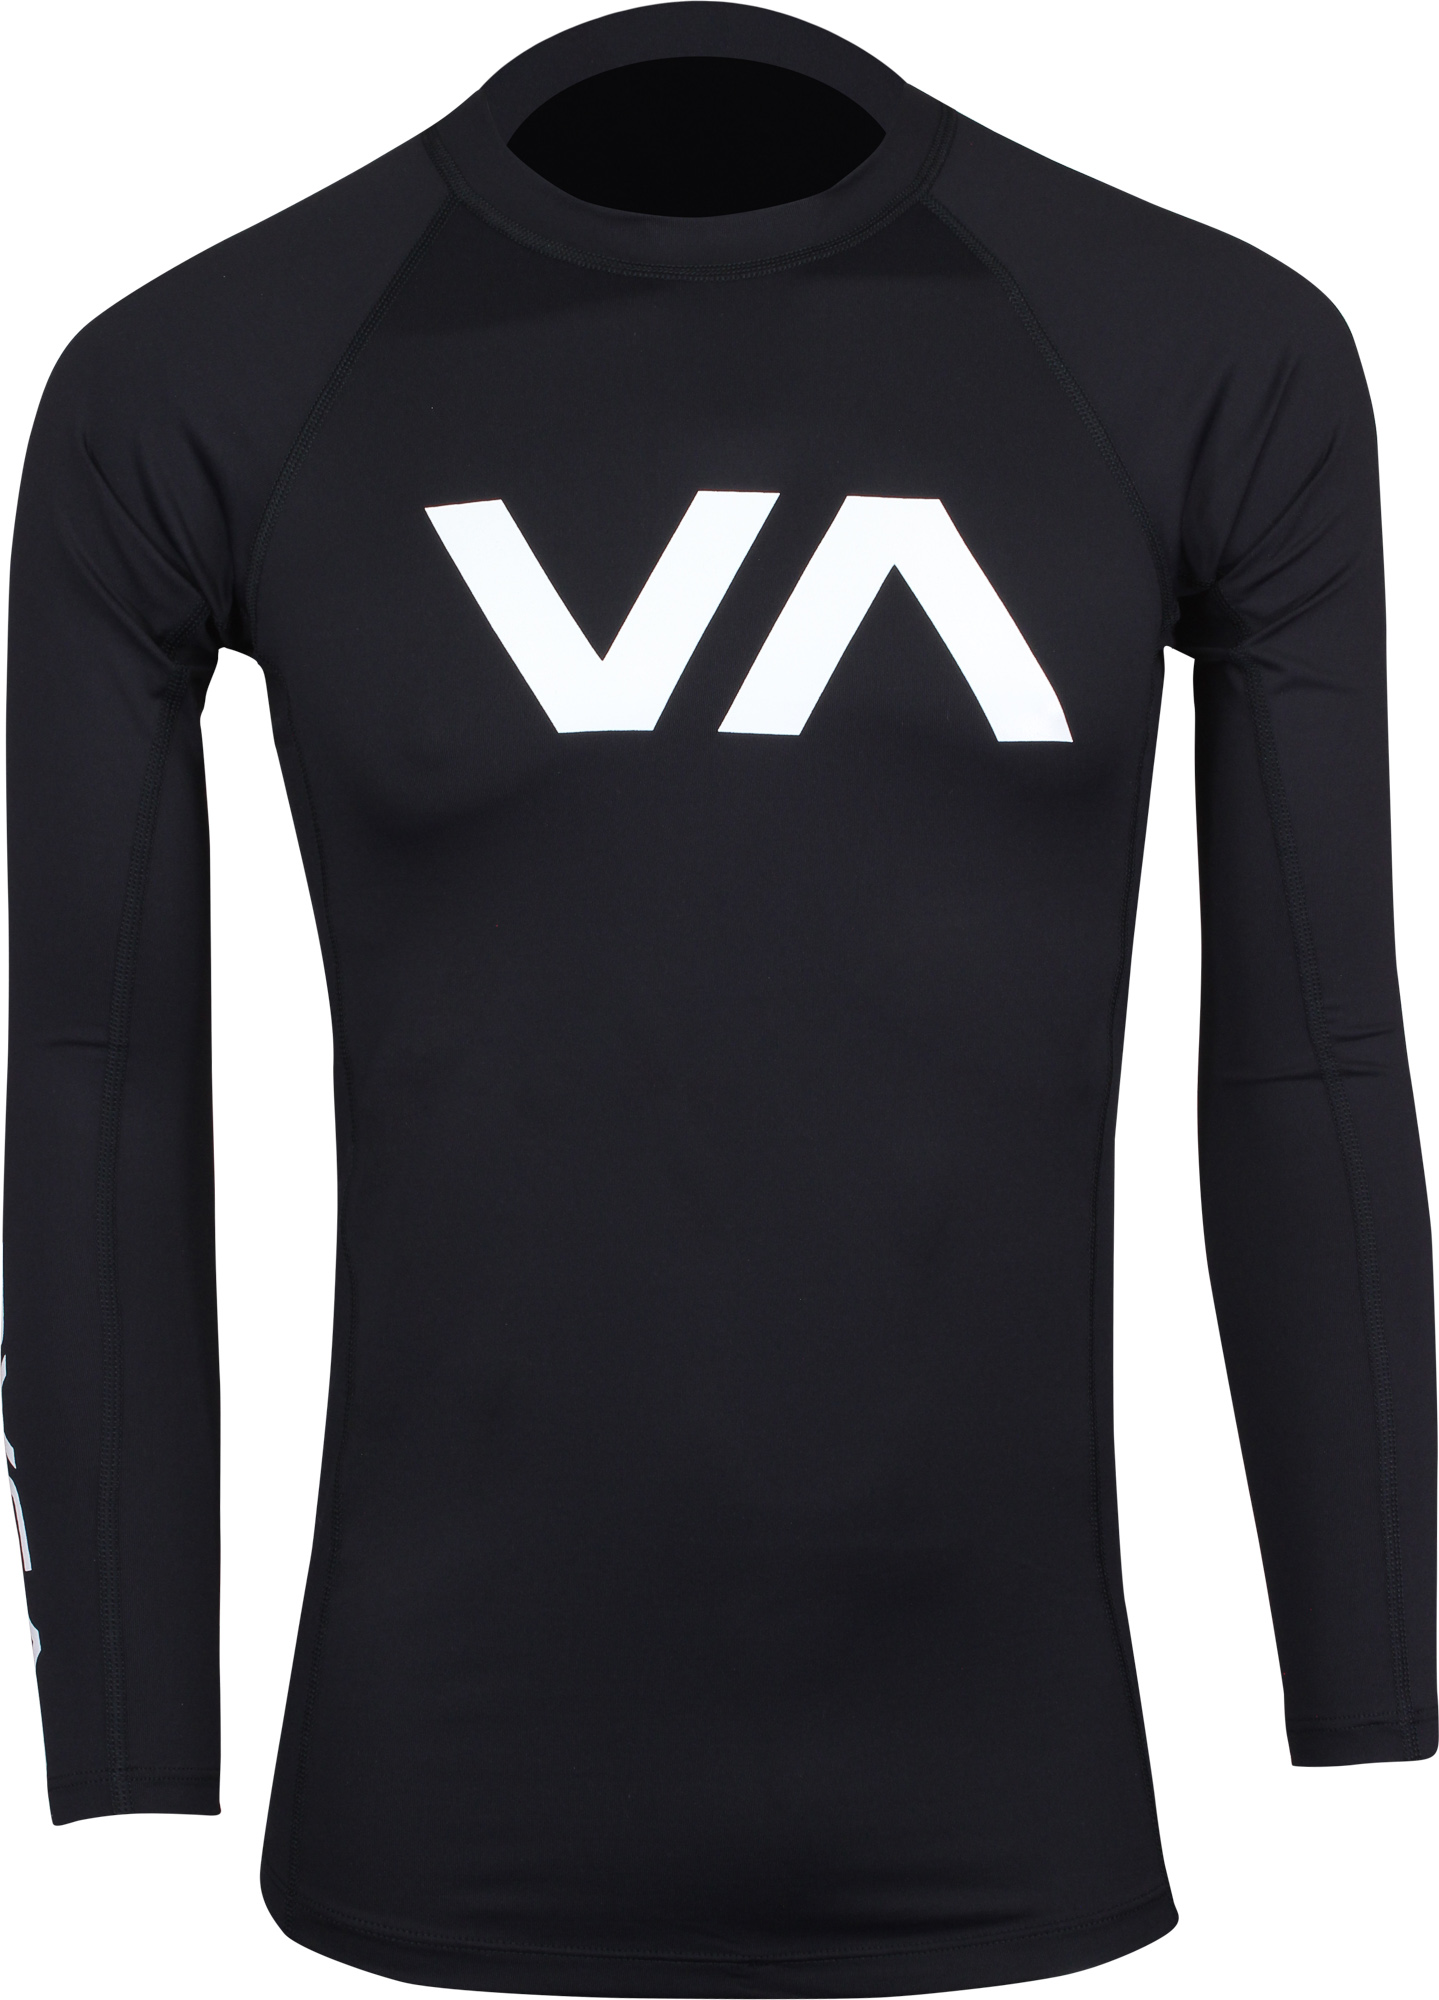 RVCA Mens Long Sleeve Rashguard MR51NRLS